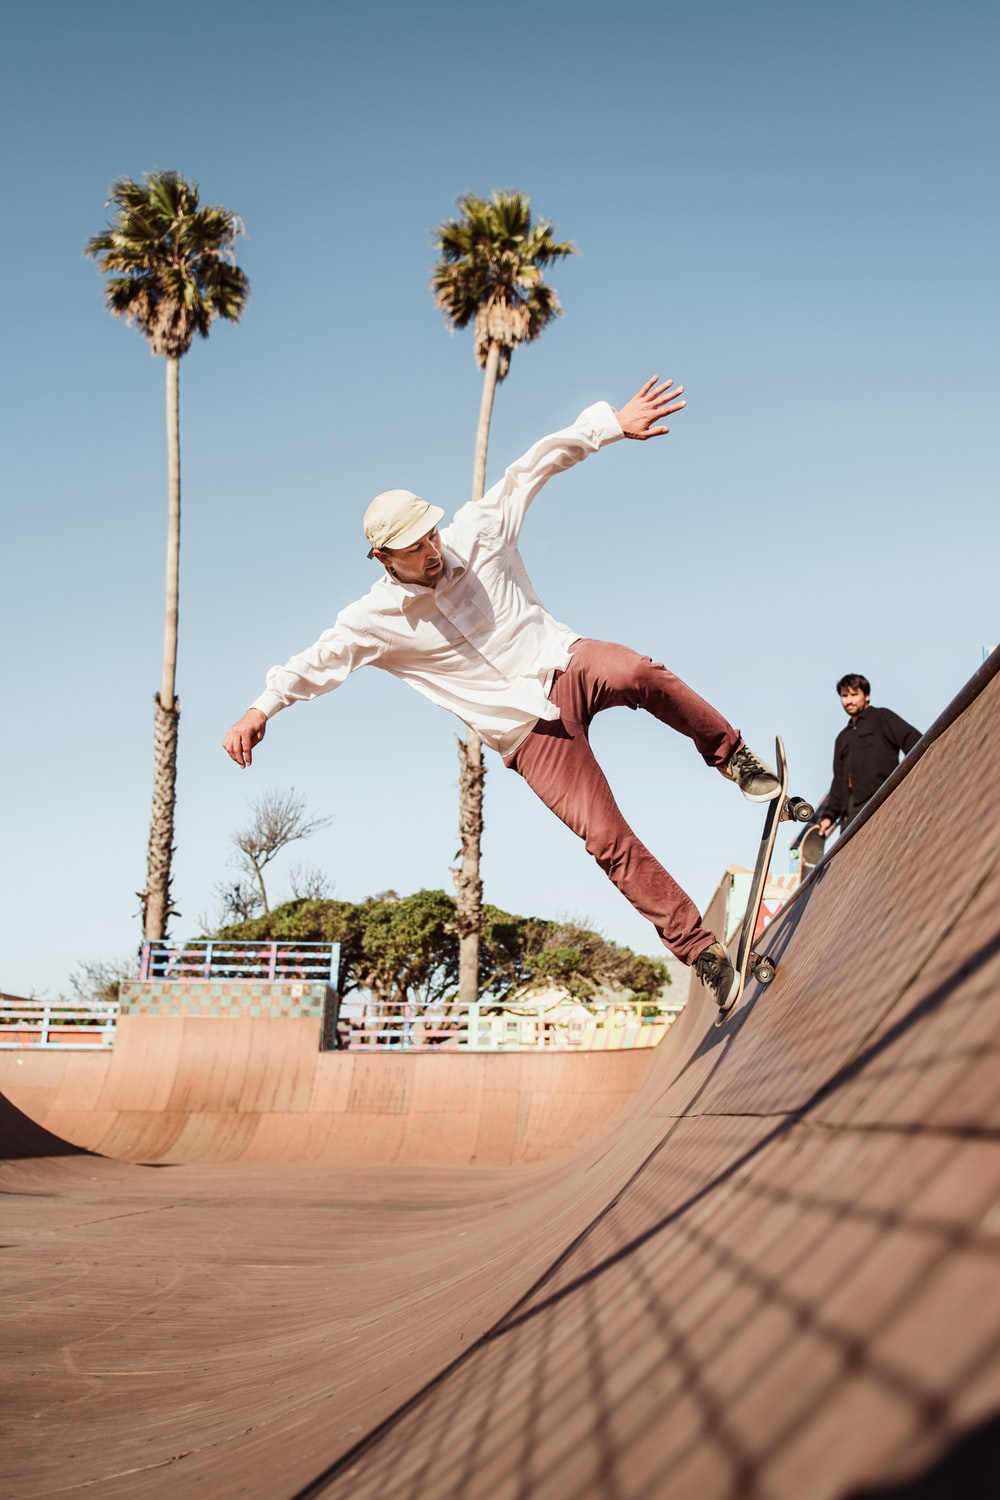 man in white shirt and brown pants riding skateboard during daytime